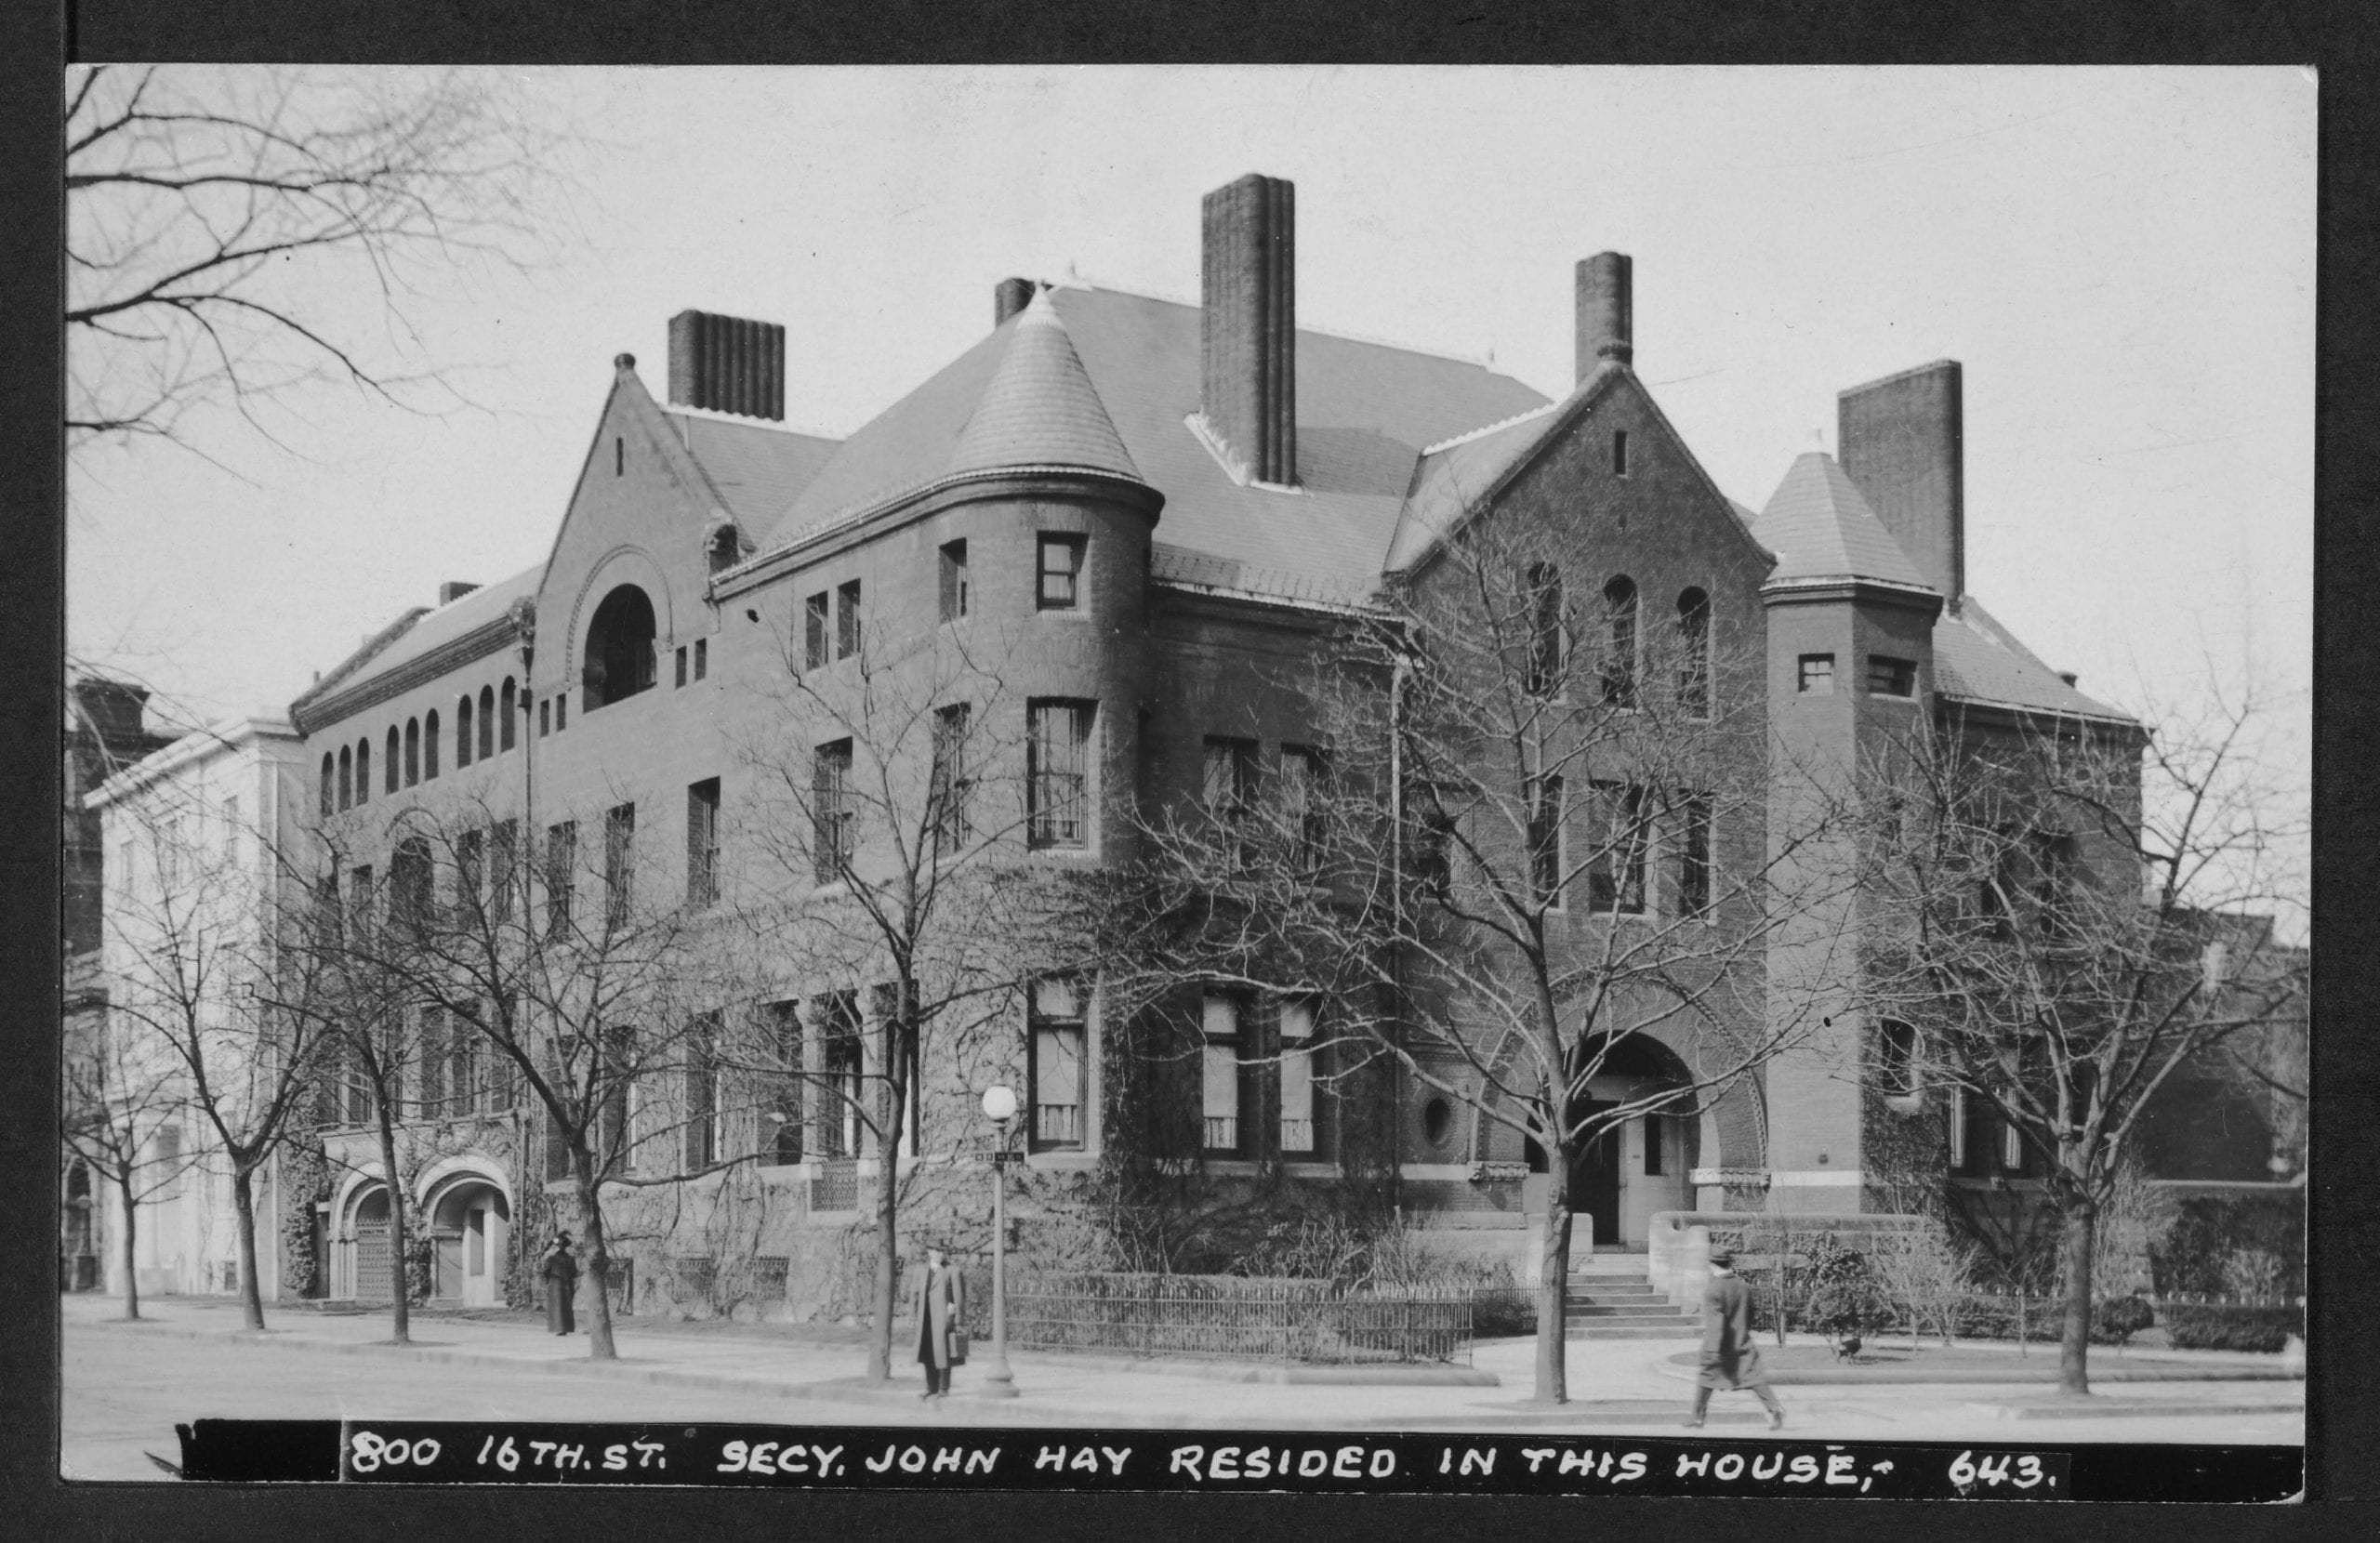 View of house at 800 16th Street NW once occupied by Secretary of State John Hay (1898-1905).